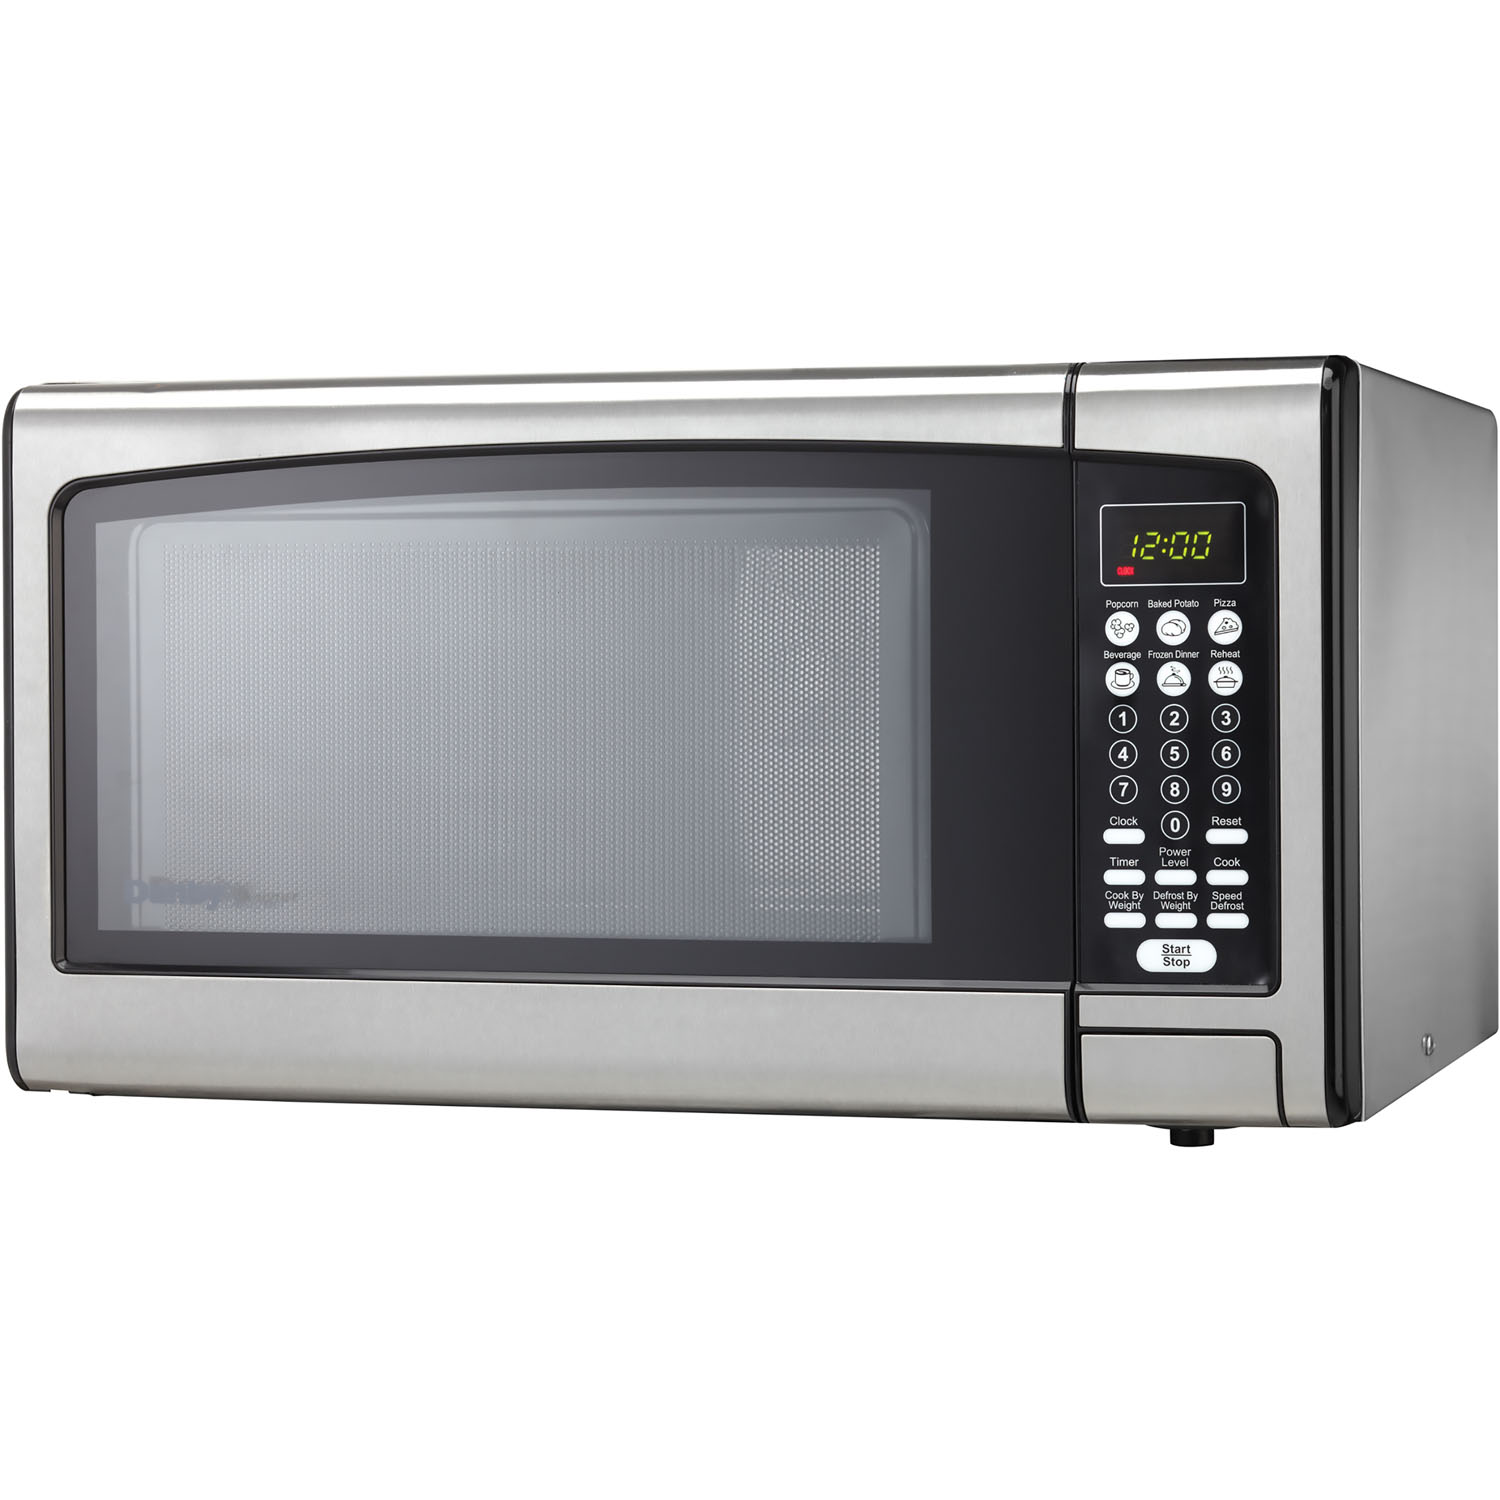 Ft Microwave Oven In Stainless Steel Dmw111kpssdd